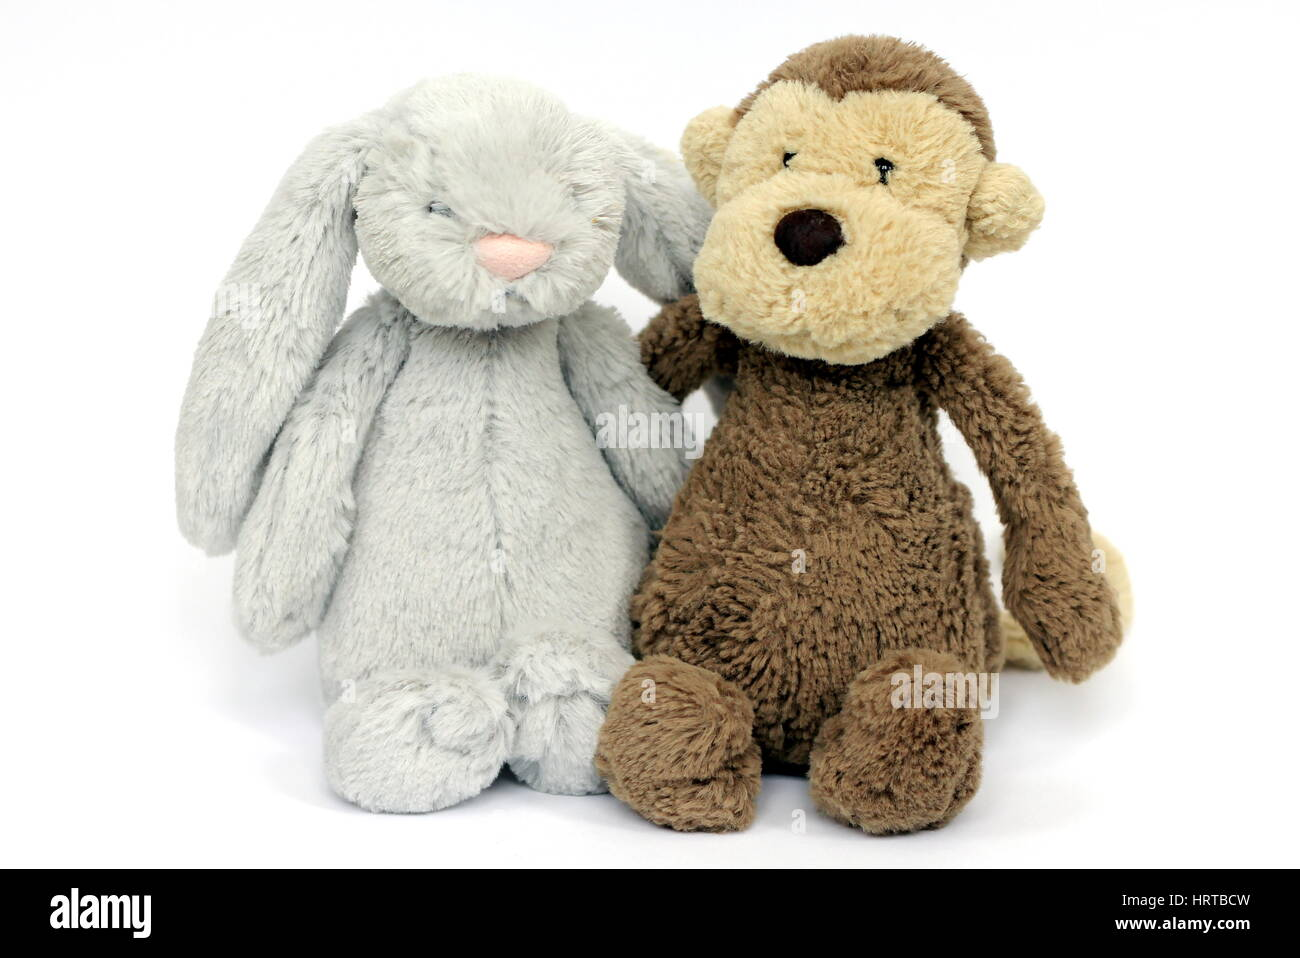 Brown fluffy monkey and grey fluffy rabbit soft toy - Stock Image